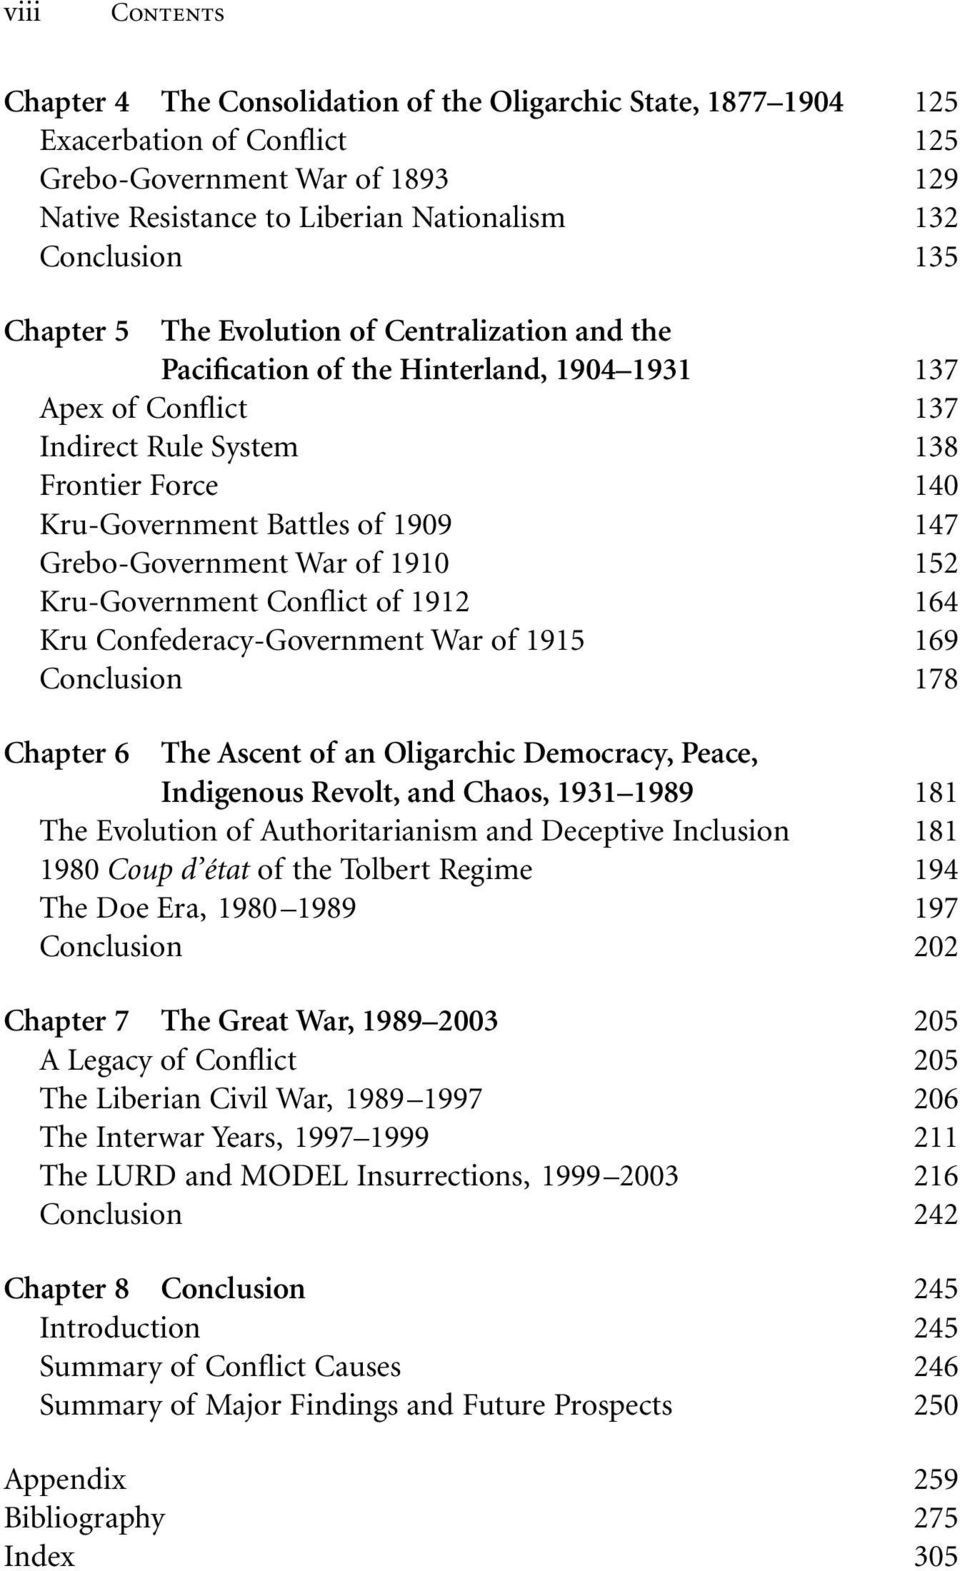 Grebo-Government War of 1910 152 Kru-Government Conflict of 1912 164 Kru Confederacy-Government War of 1915 169 Conclusion 178 Chapter 6 The Ascent of an Oligarchic Democracy, Peace, Indigenous